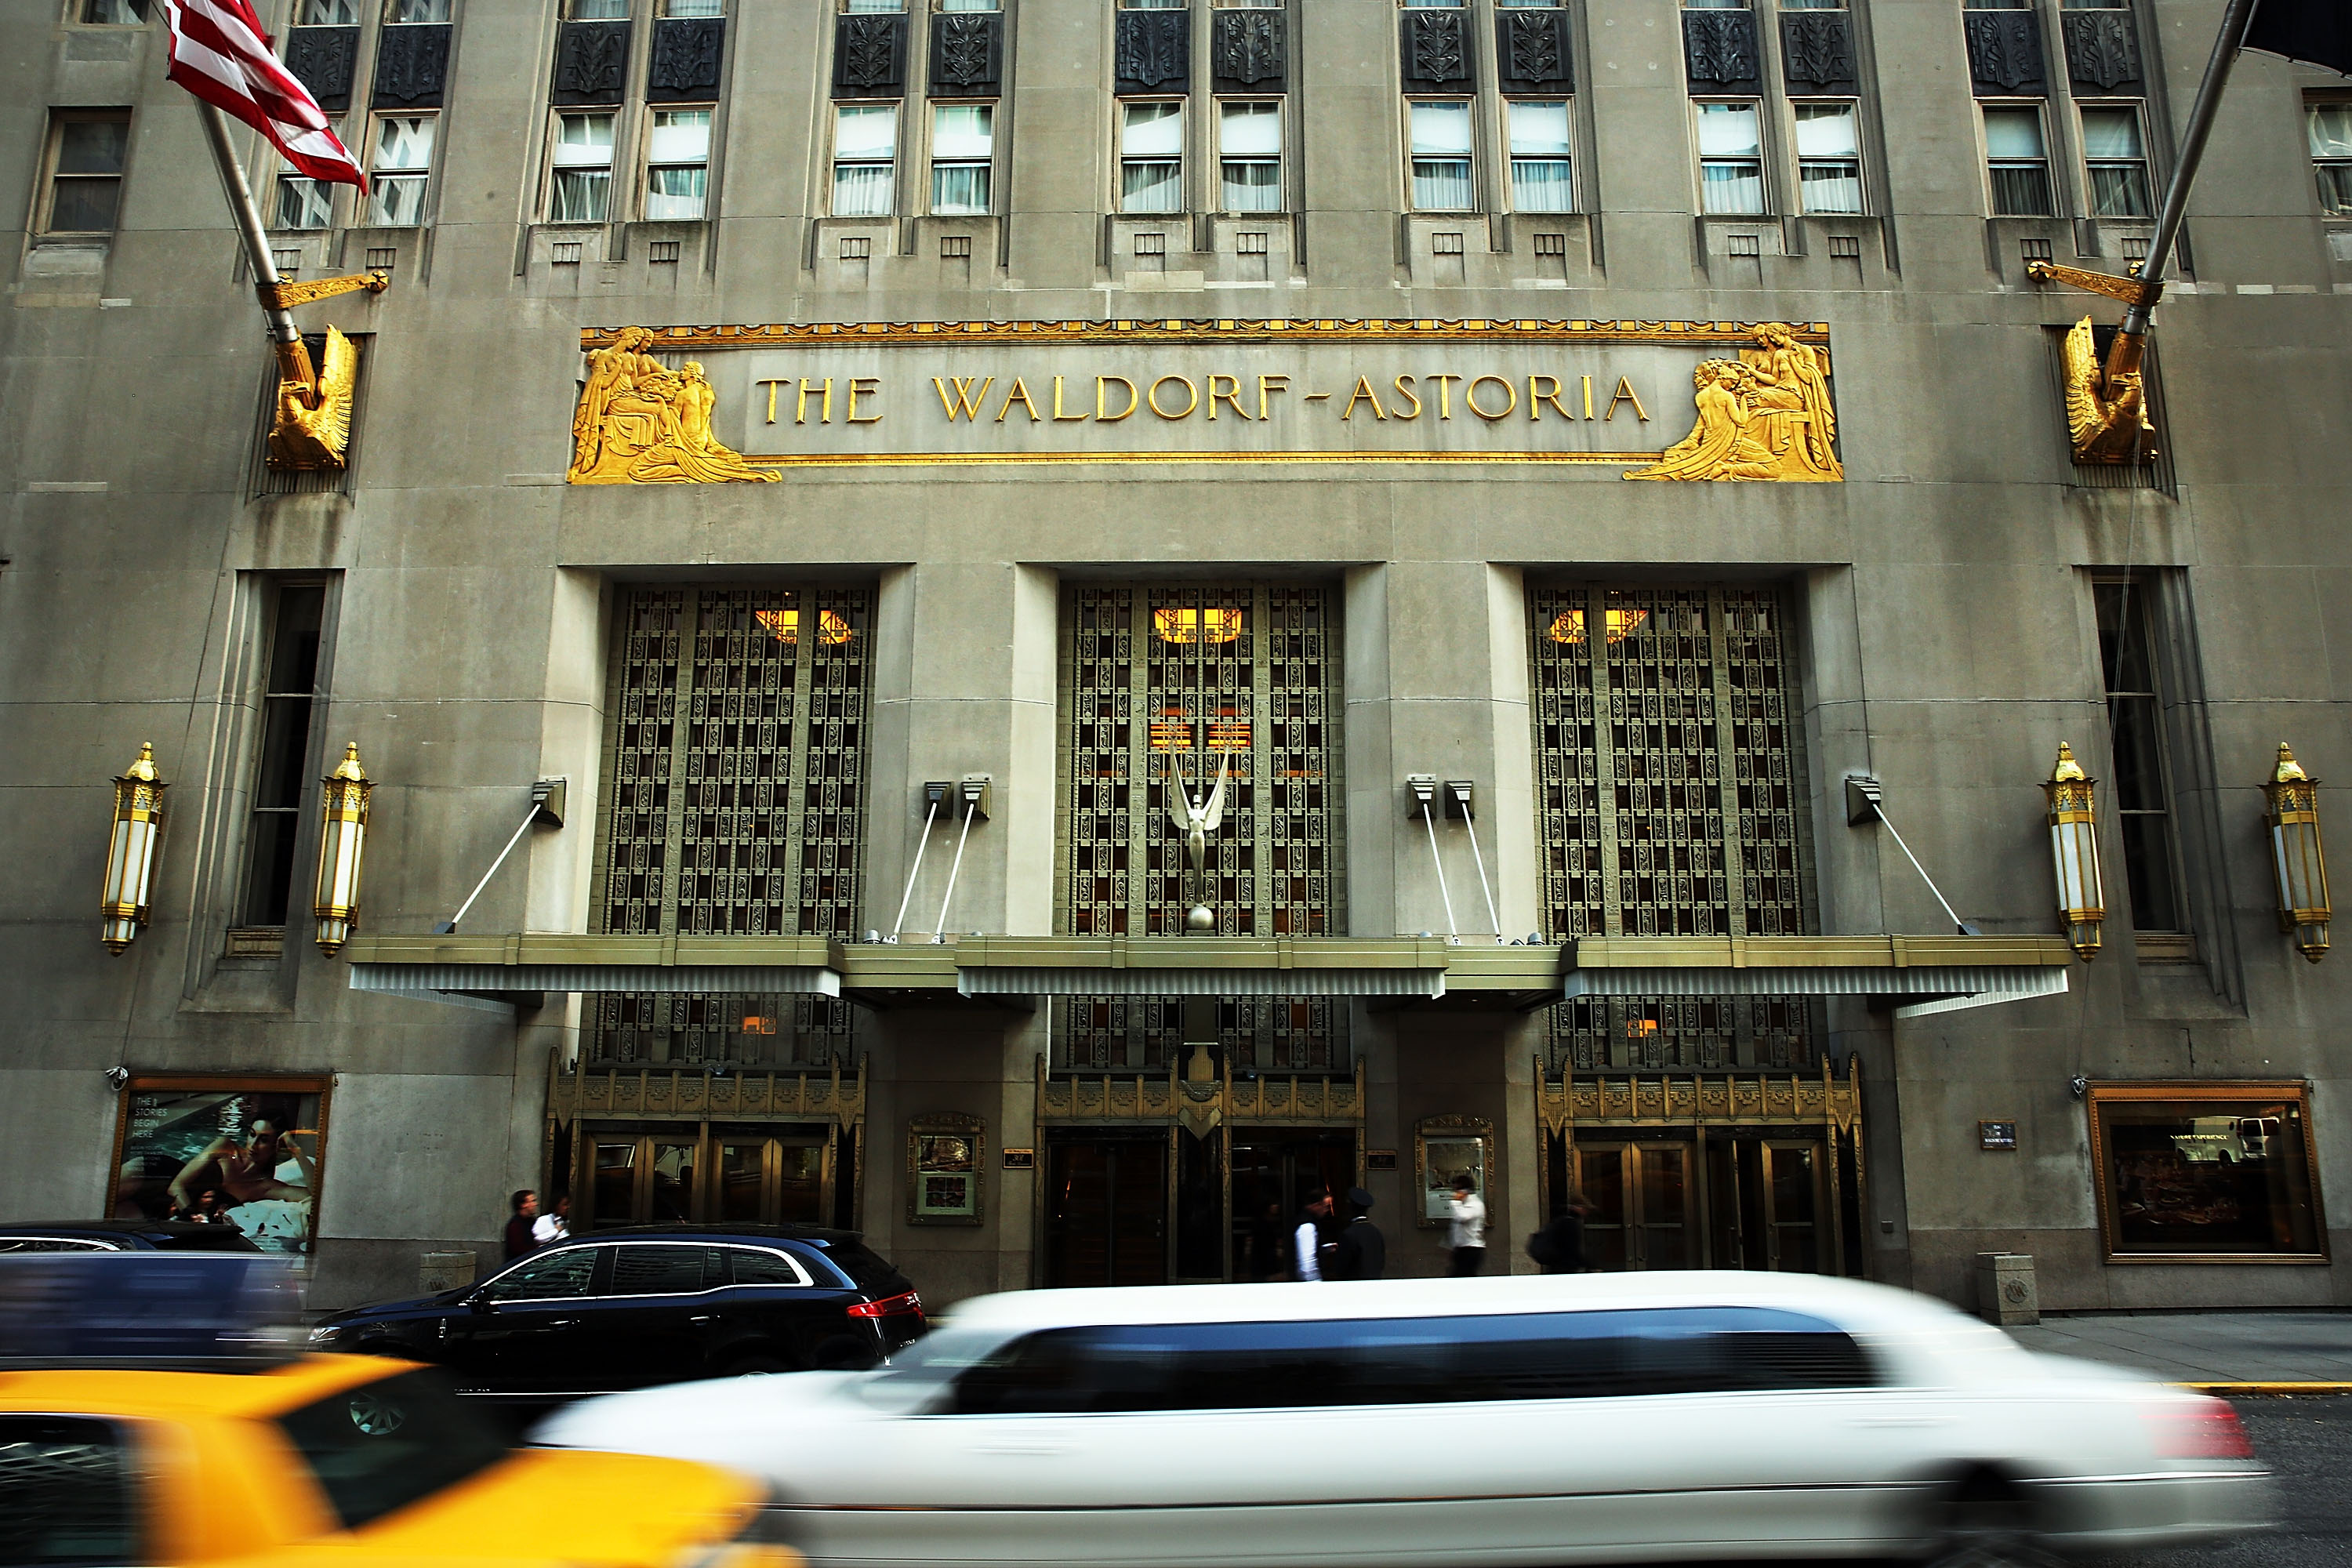 Hilton To Sell Landmark Waldorf-Astoria Hotel For Close To $2 Billion